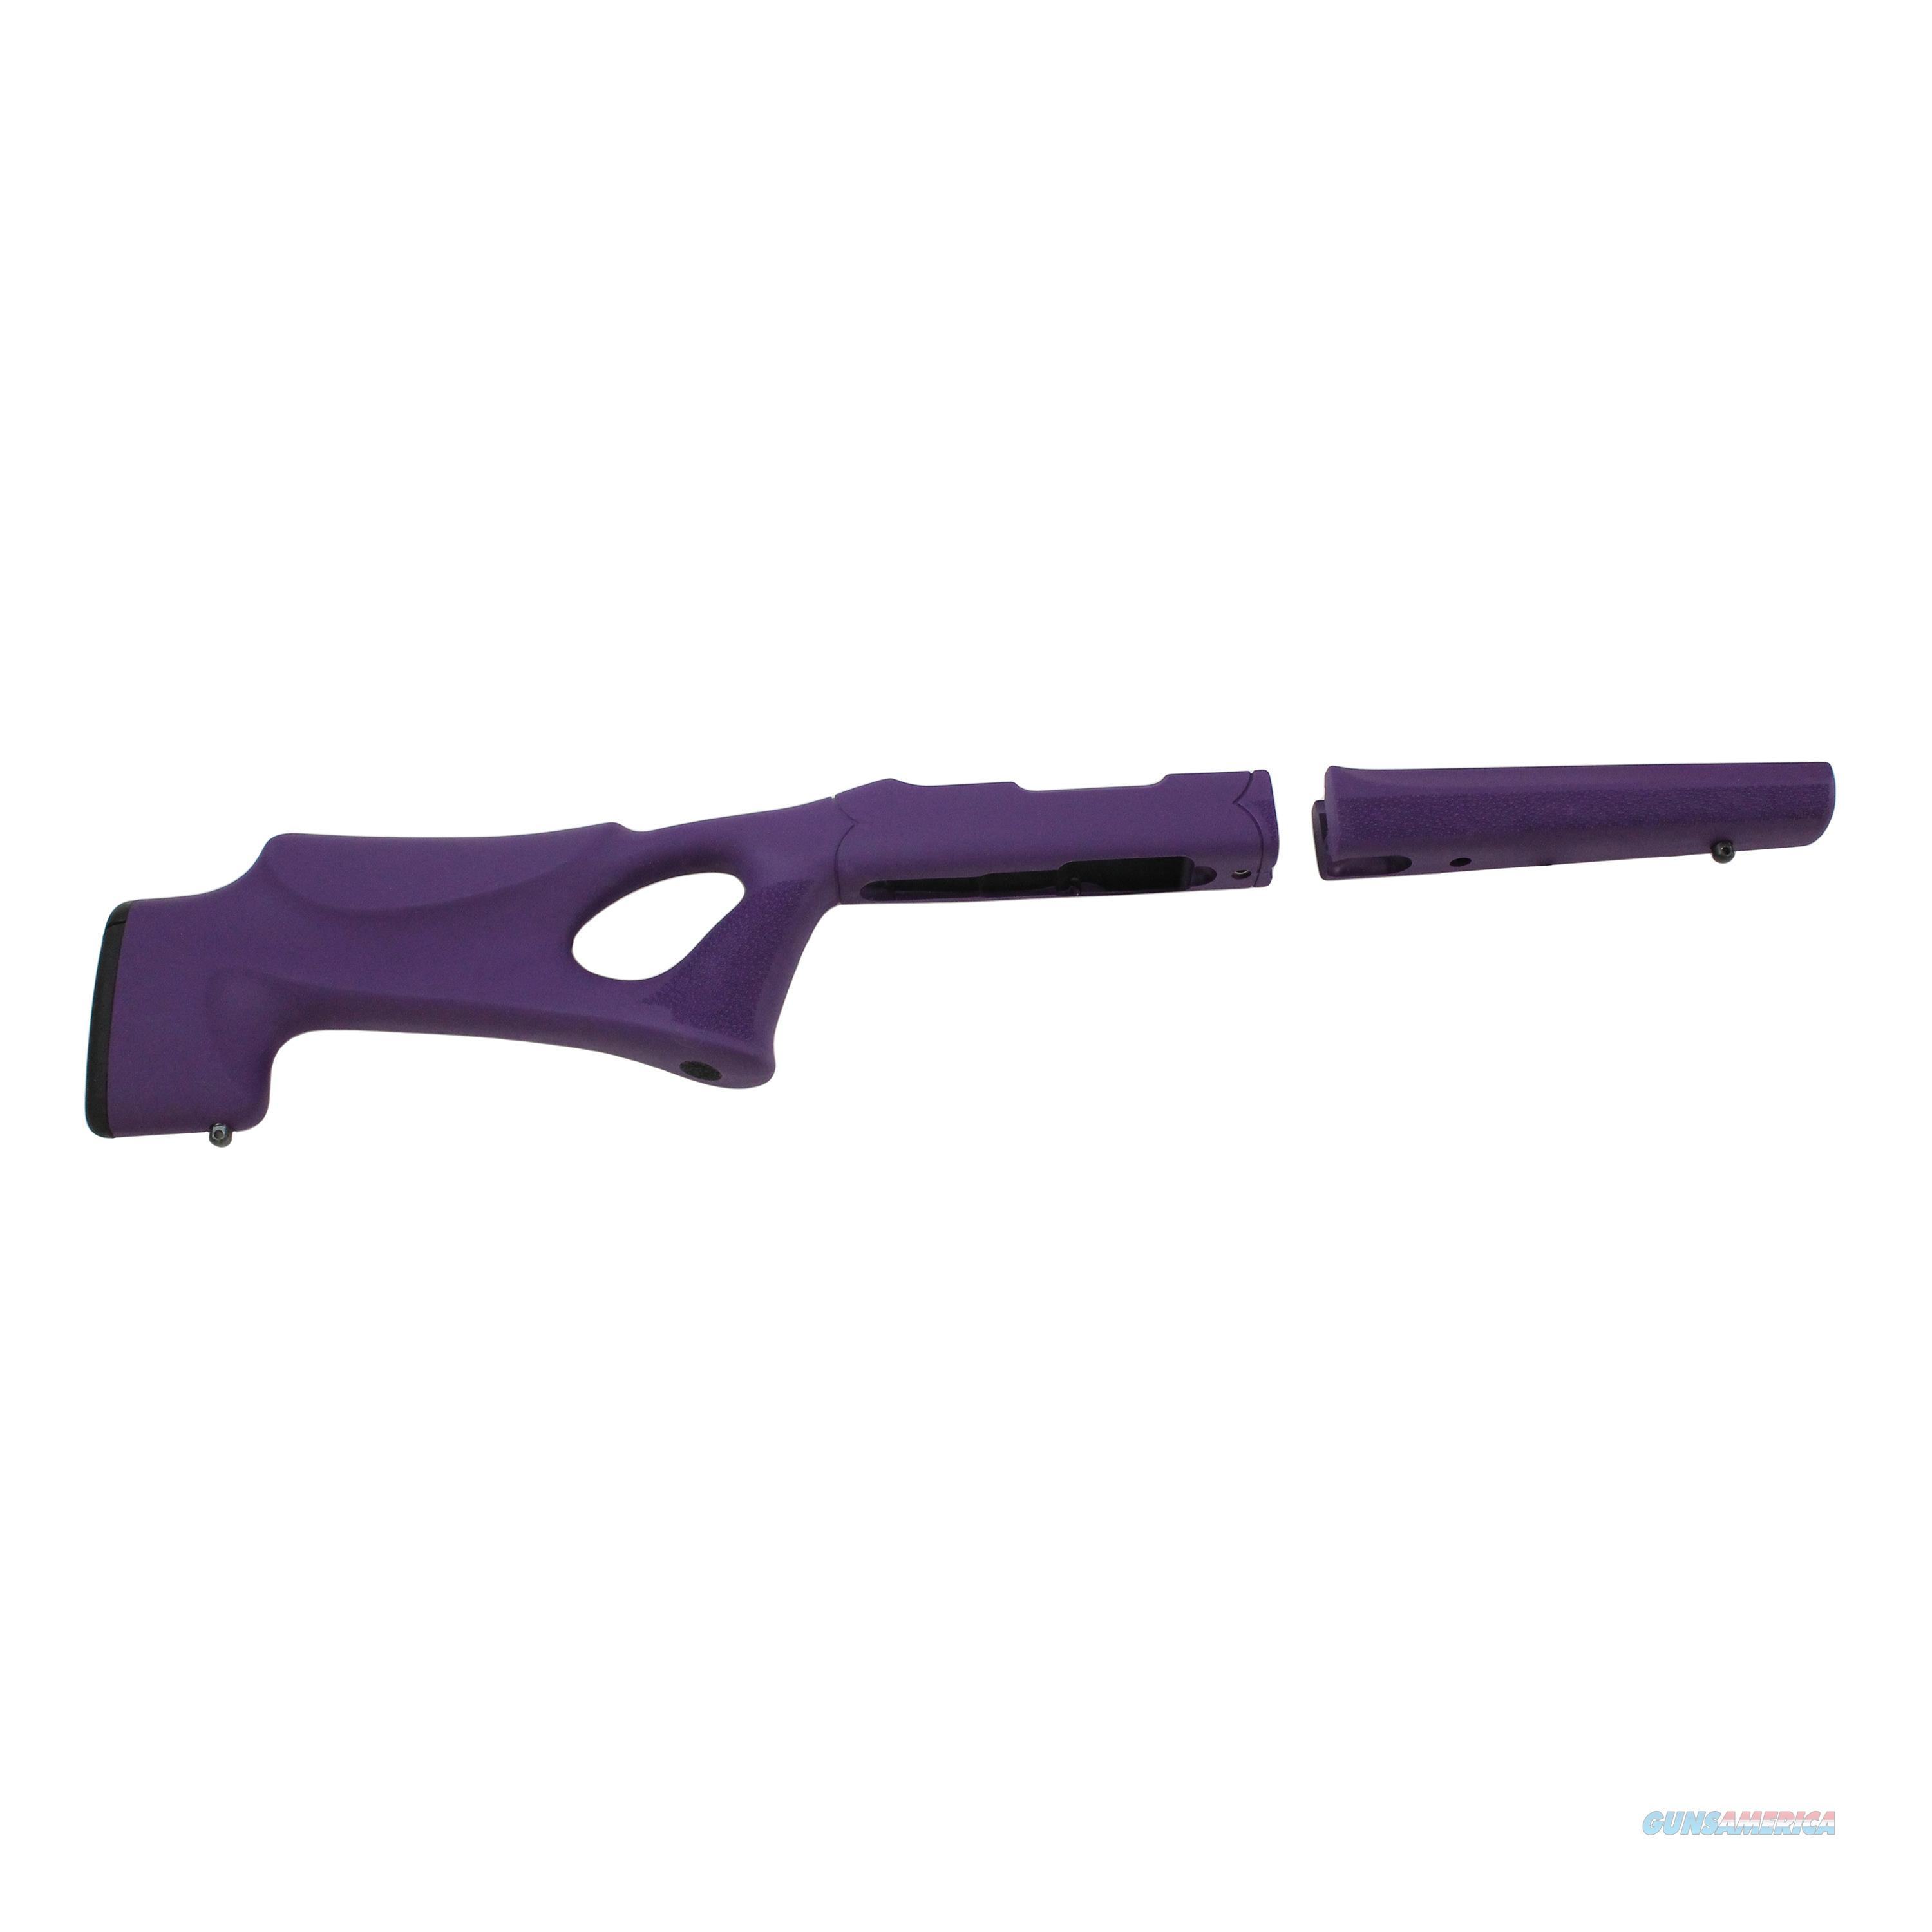 "Hogue 10/22 Takedown Thumbhole .920"" Diameter Barrel Rubber Overmolded Stock 21076  Non-Guns > Gunstocks, Grips & Wood"